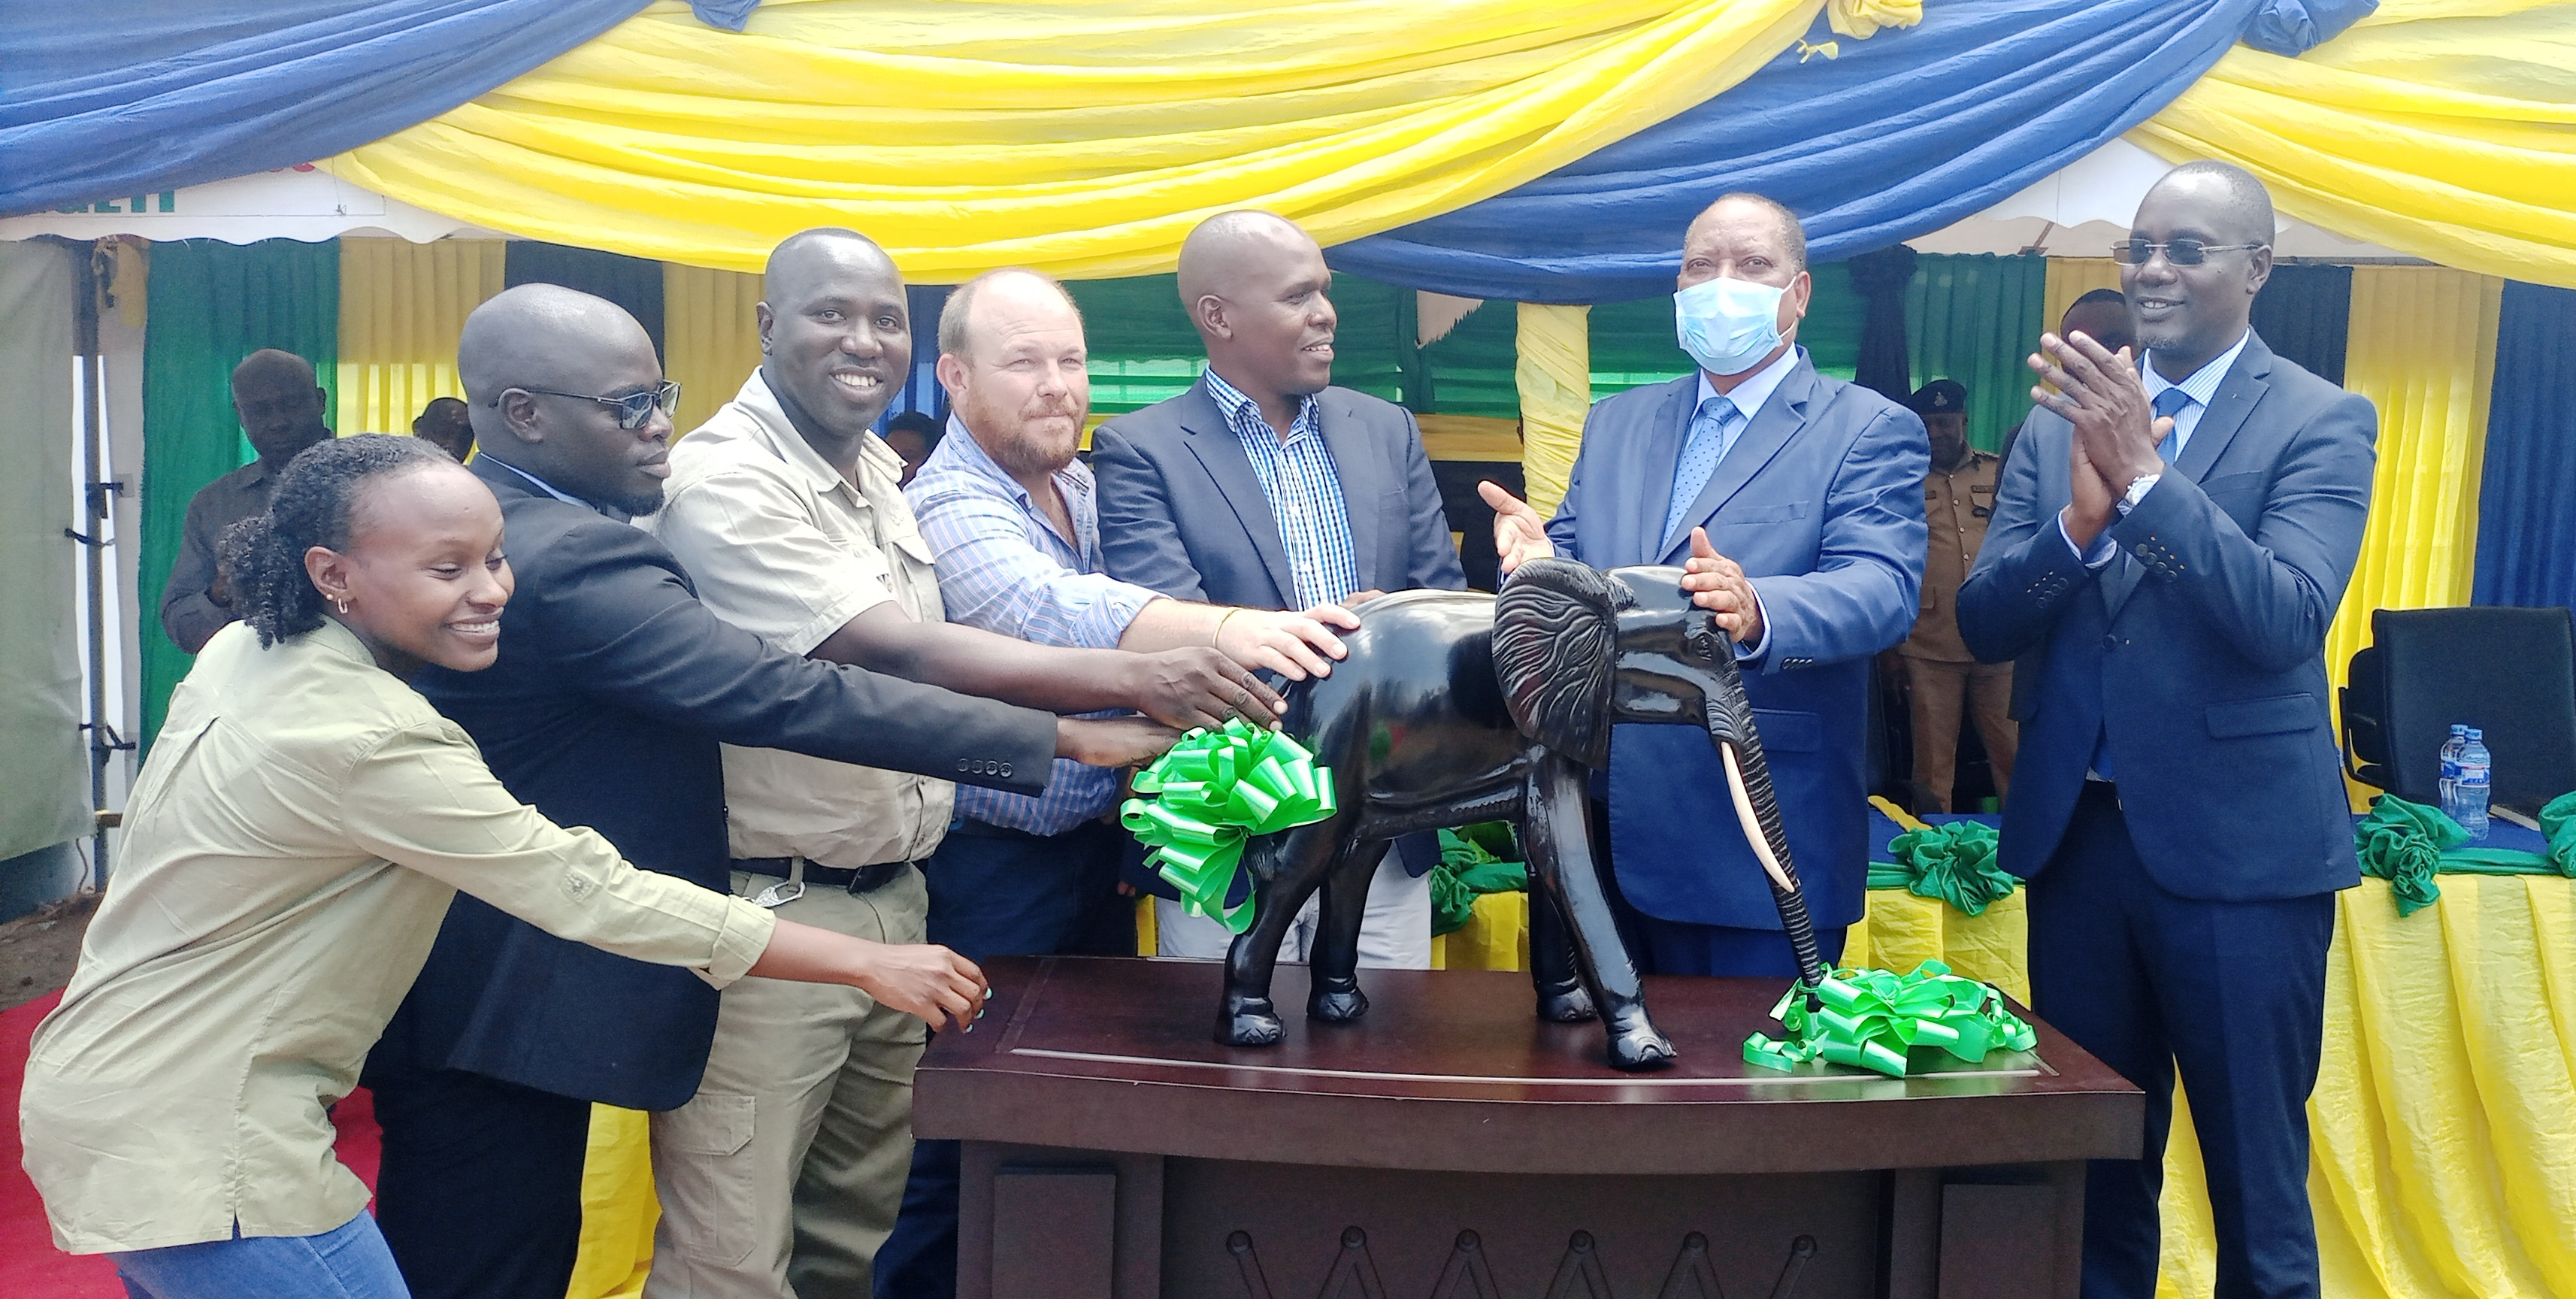 Minister hails Grumeti Fund for building donation